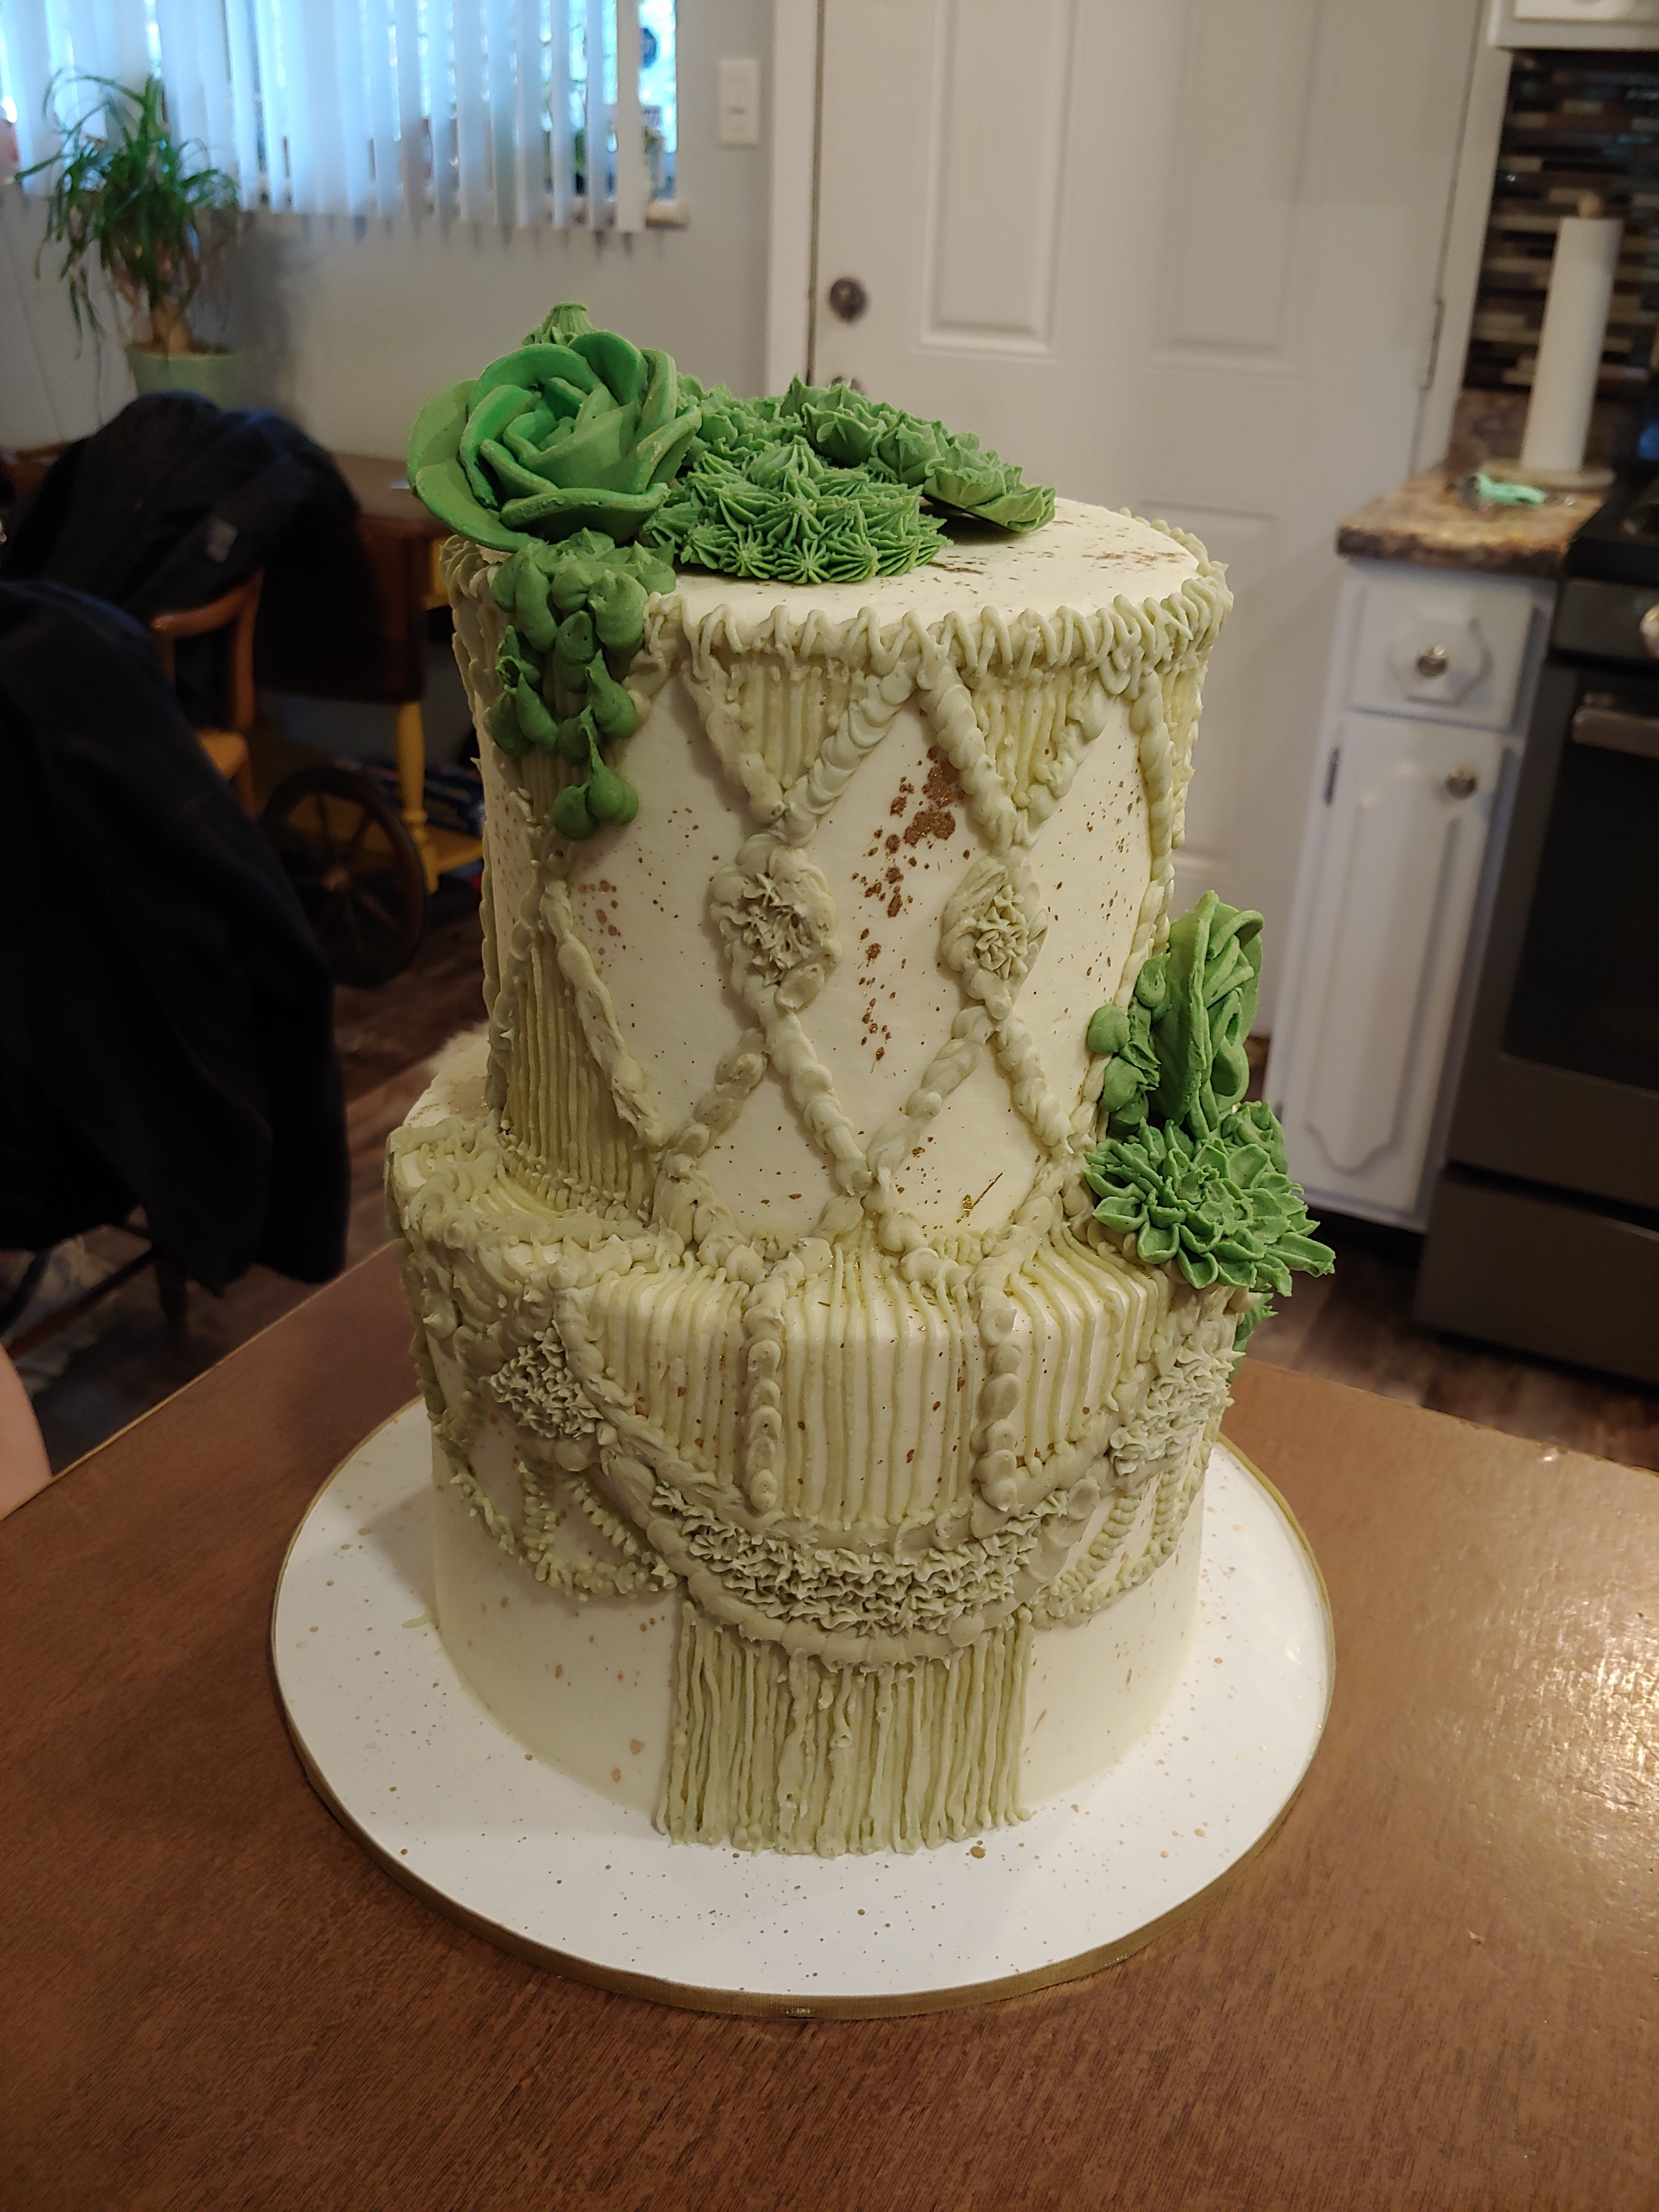 A macramé cake with fondant and icing succulents